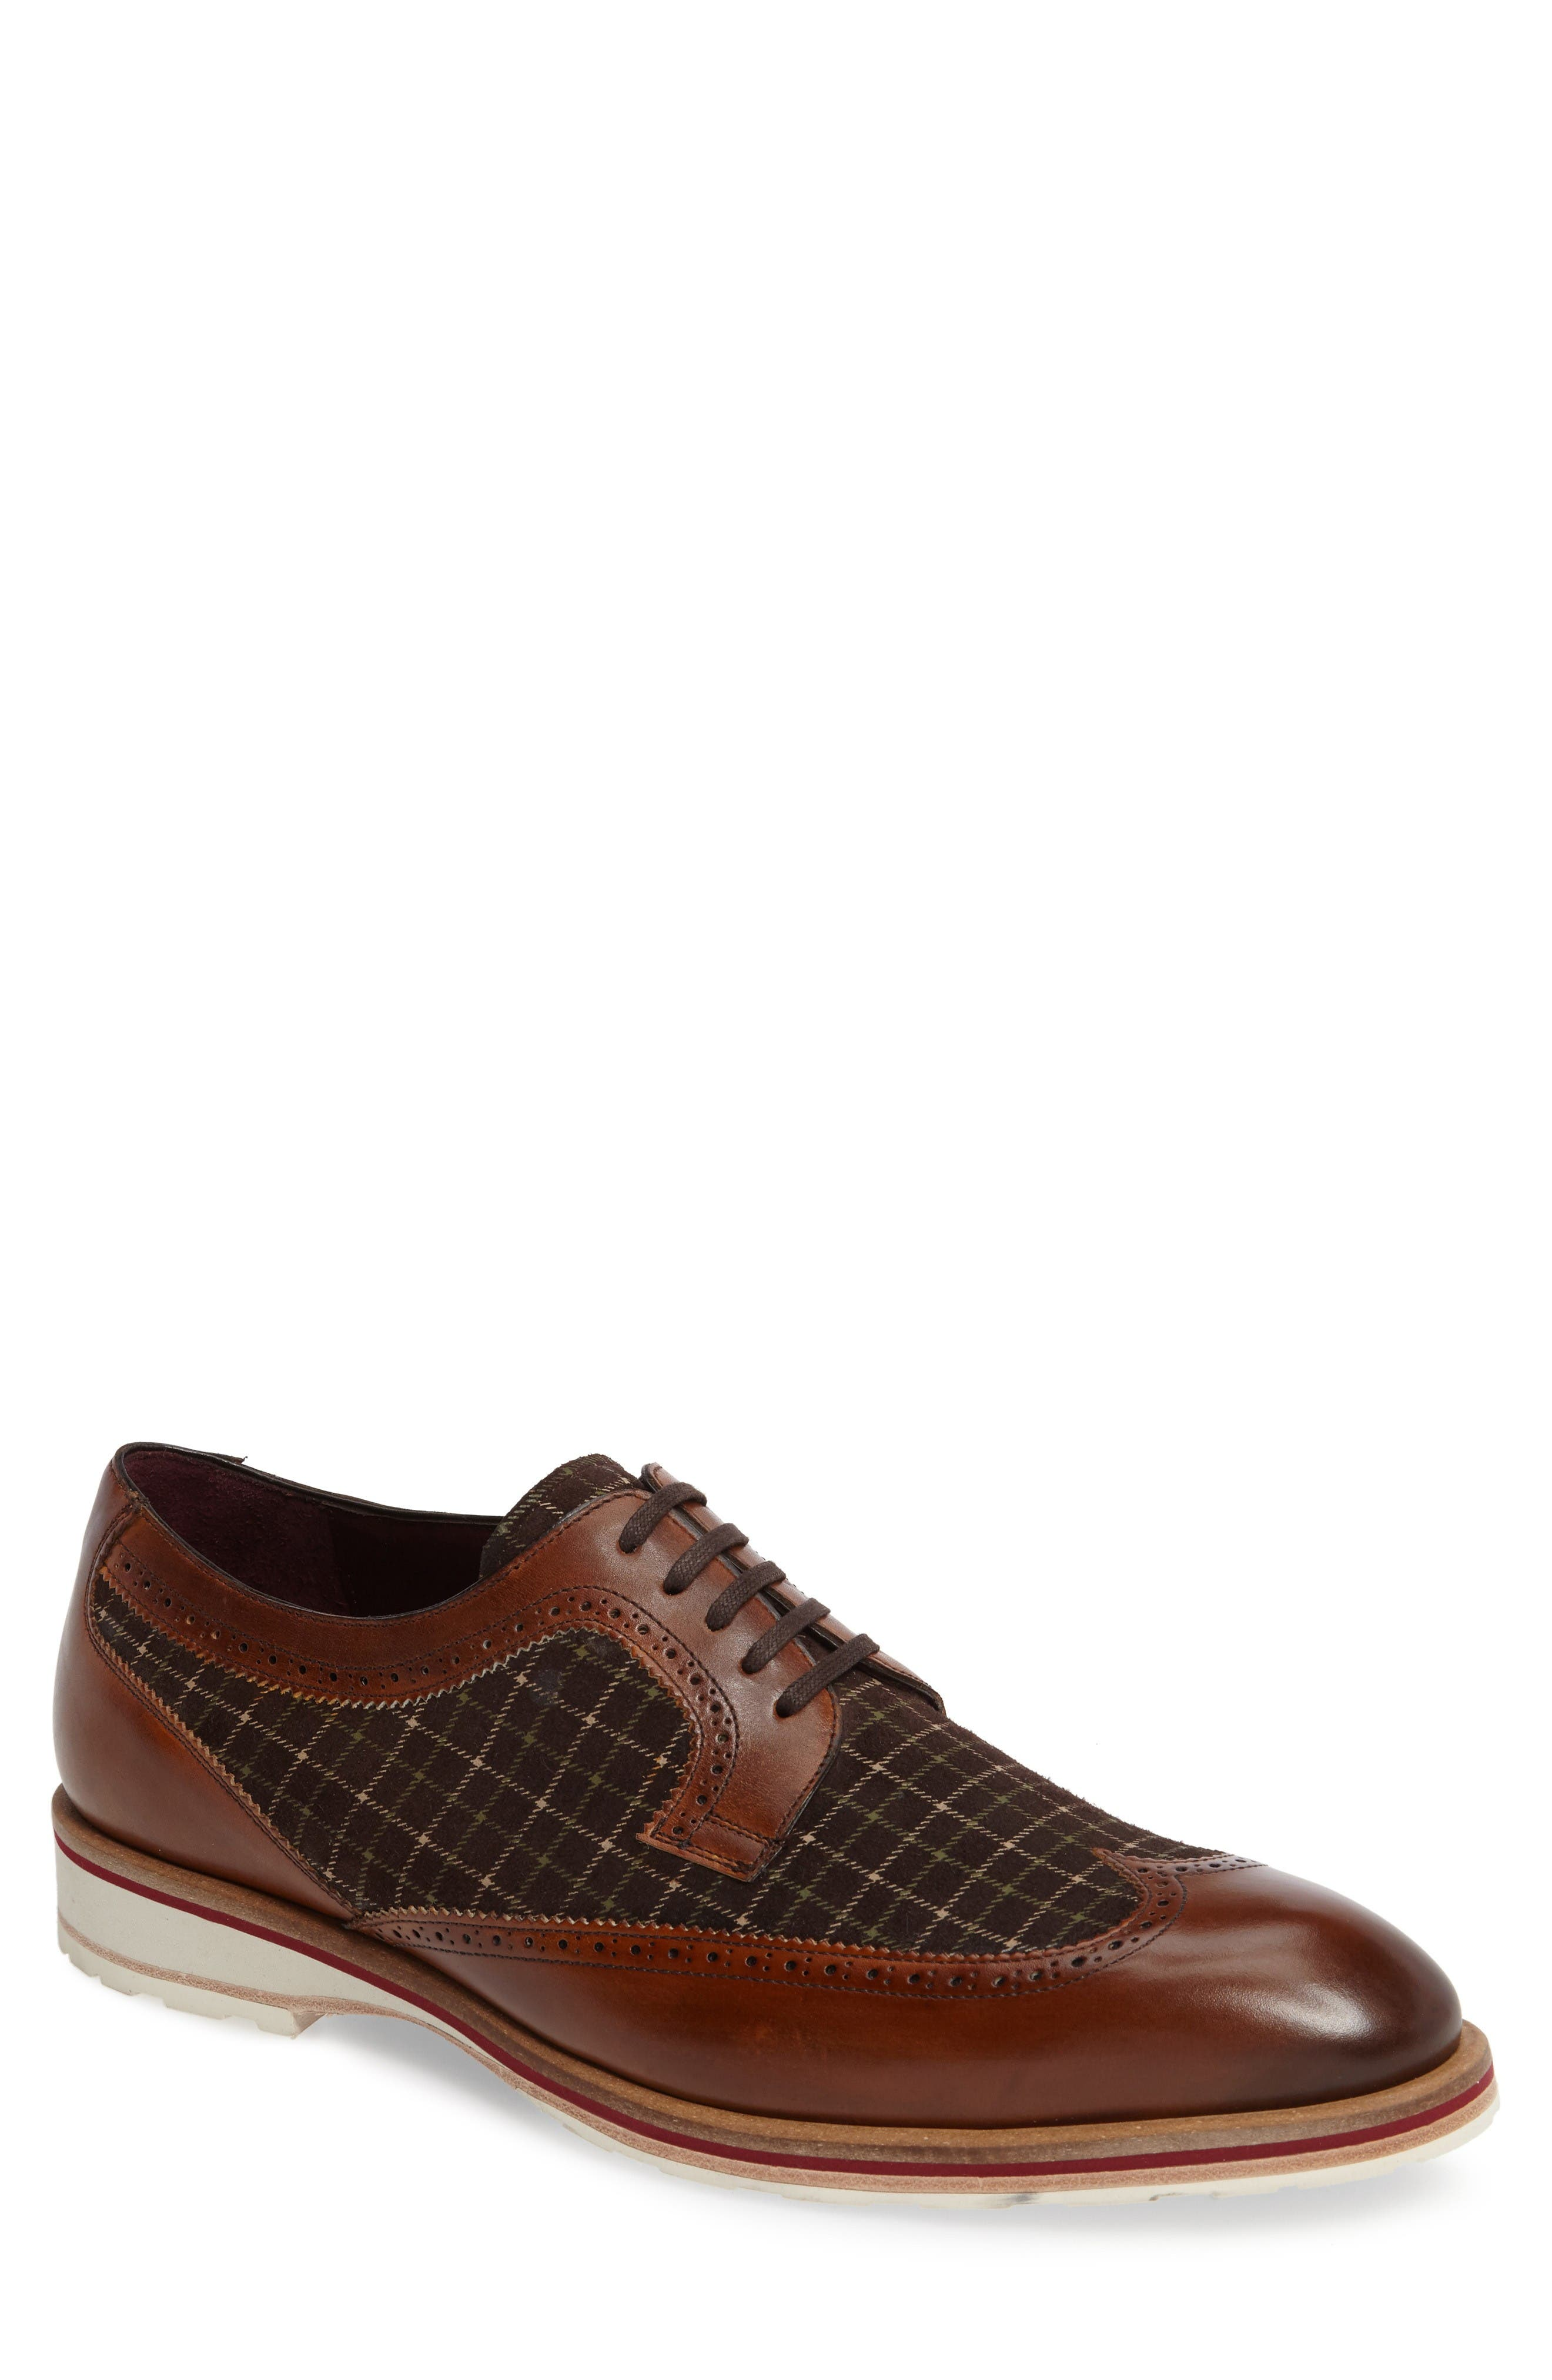 Paulov Tattersall Wingtip,                         Main,                         color, Cognac/ Brown Leather